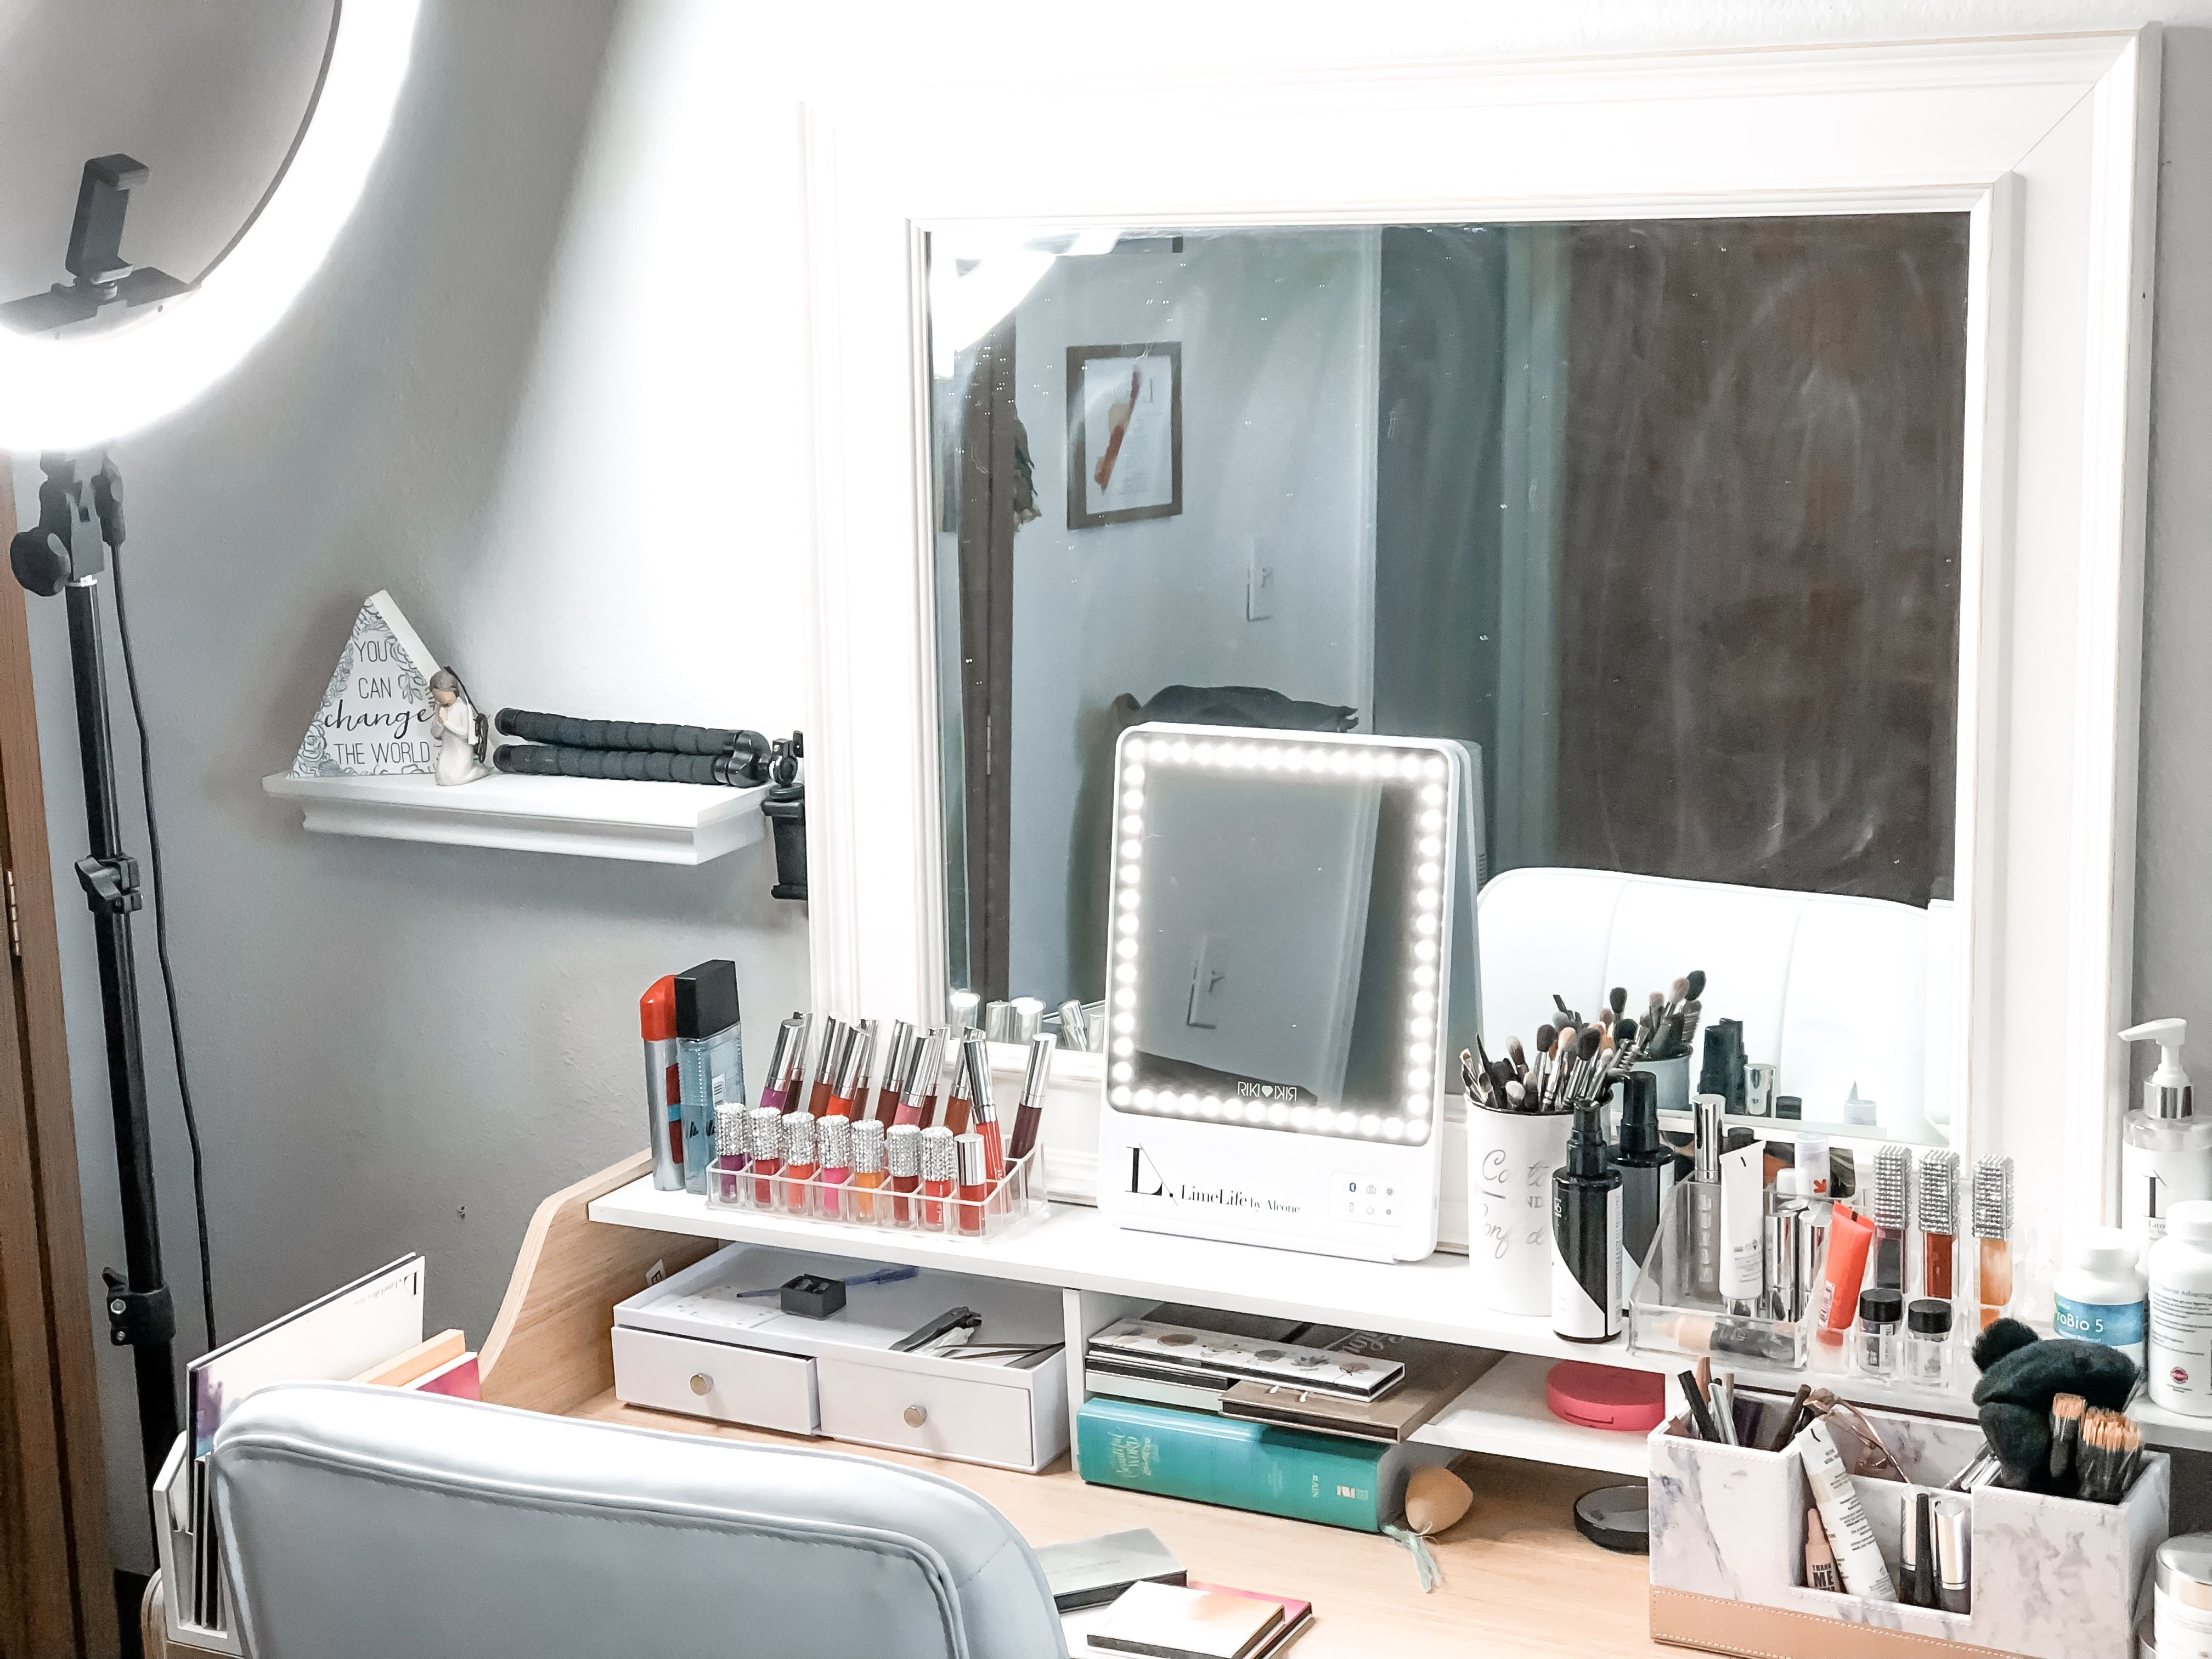 The best vanity mirror ever! 5 different light settings